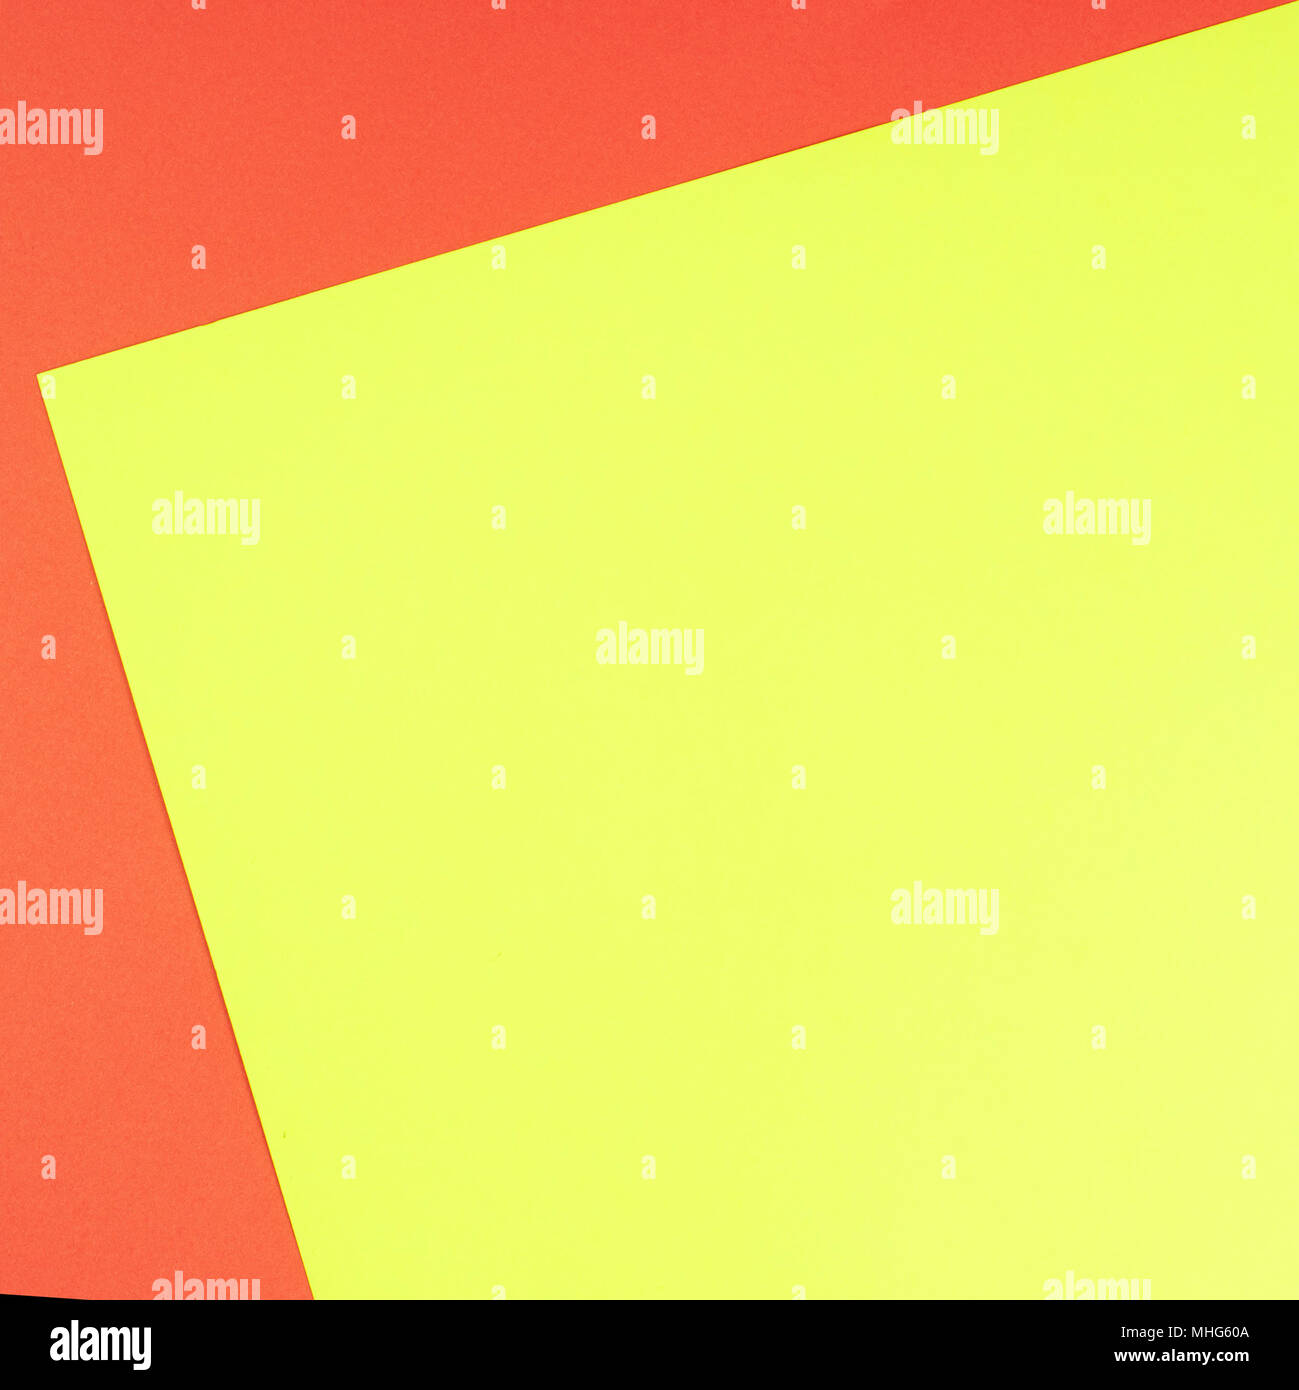 Color papers geometry flat composition background with yellow and ...